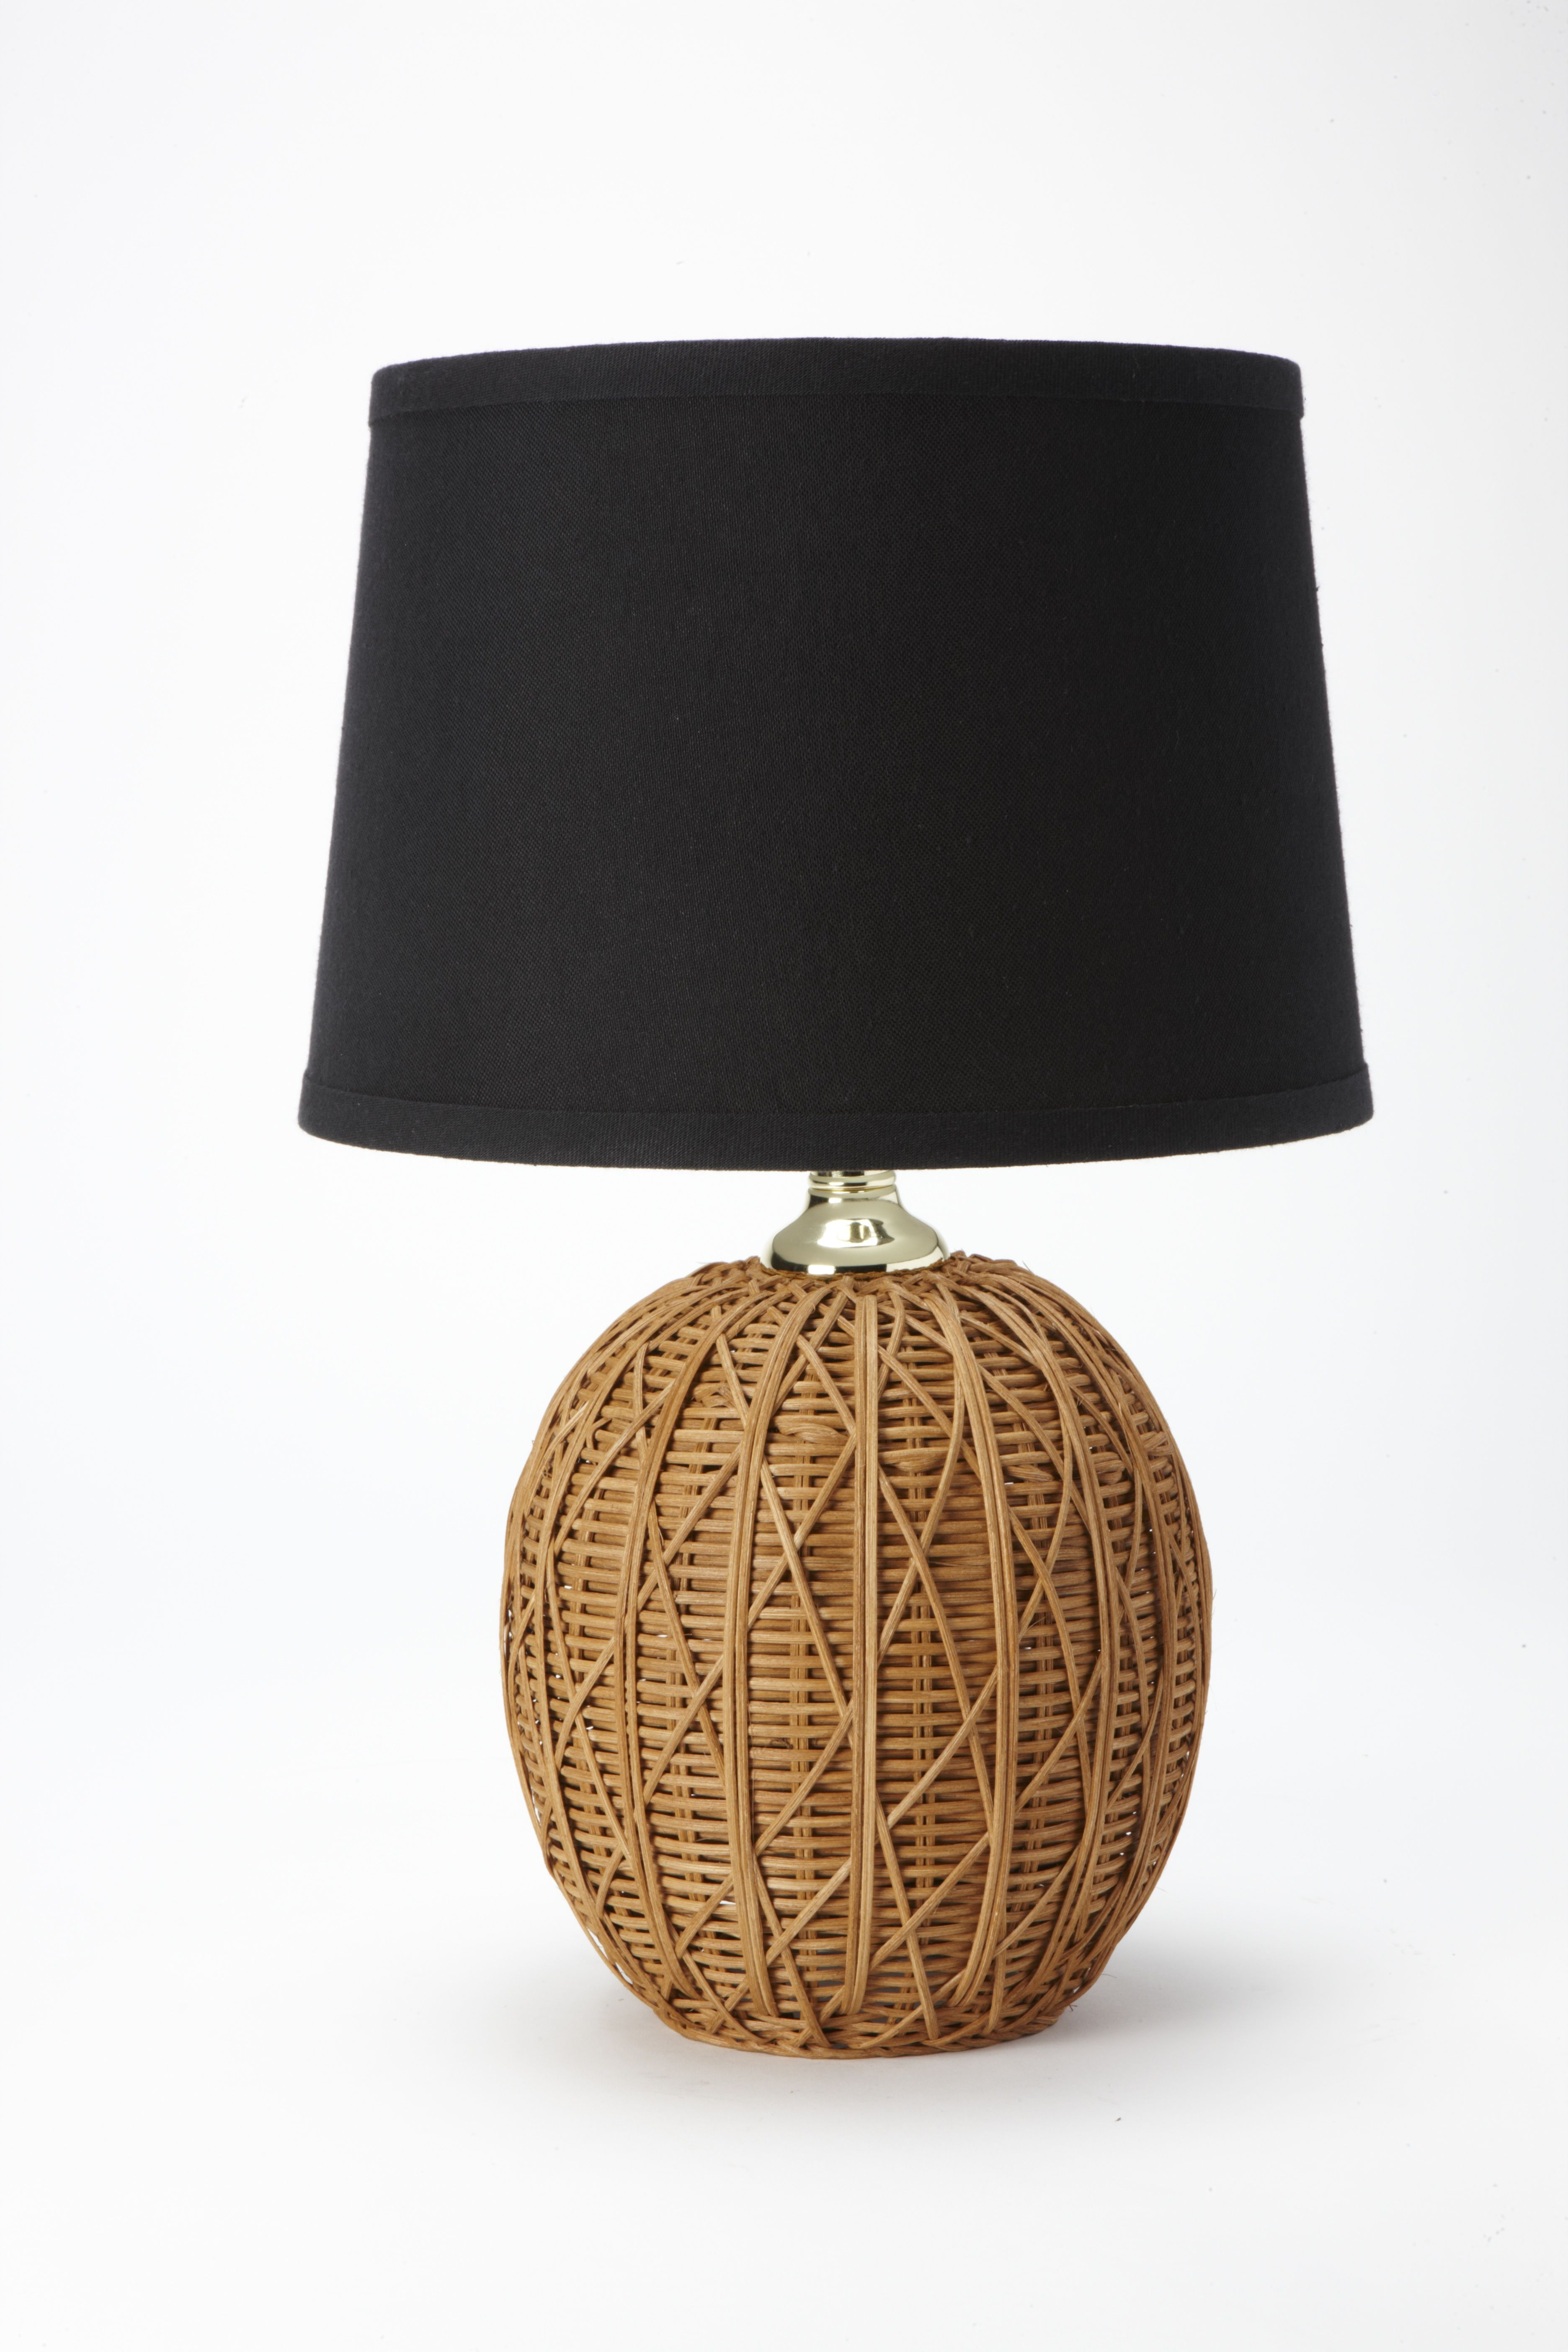 Exceptional @Nate Berkus Woven Rattan Table Lamp Base With Black Linen Lamp Shade